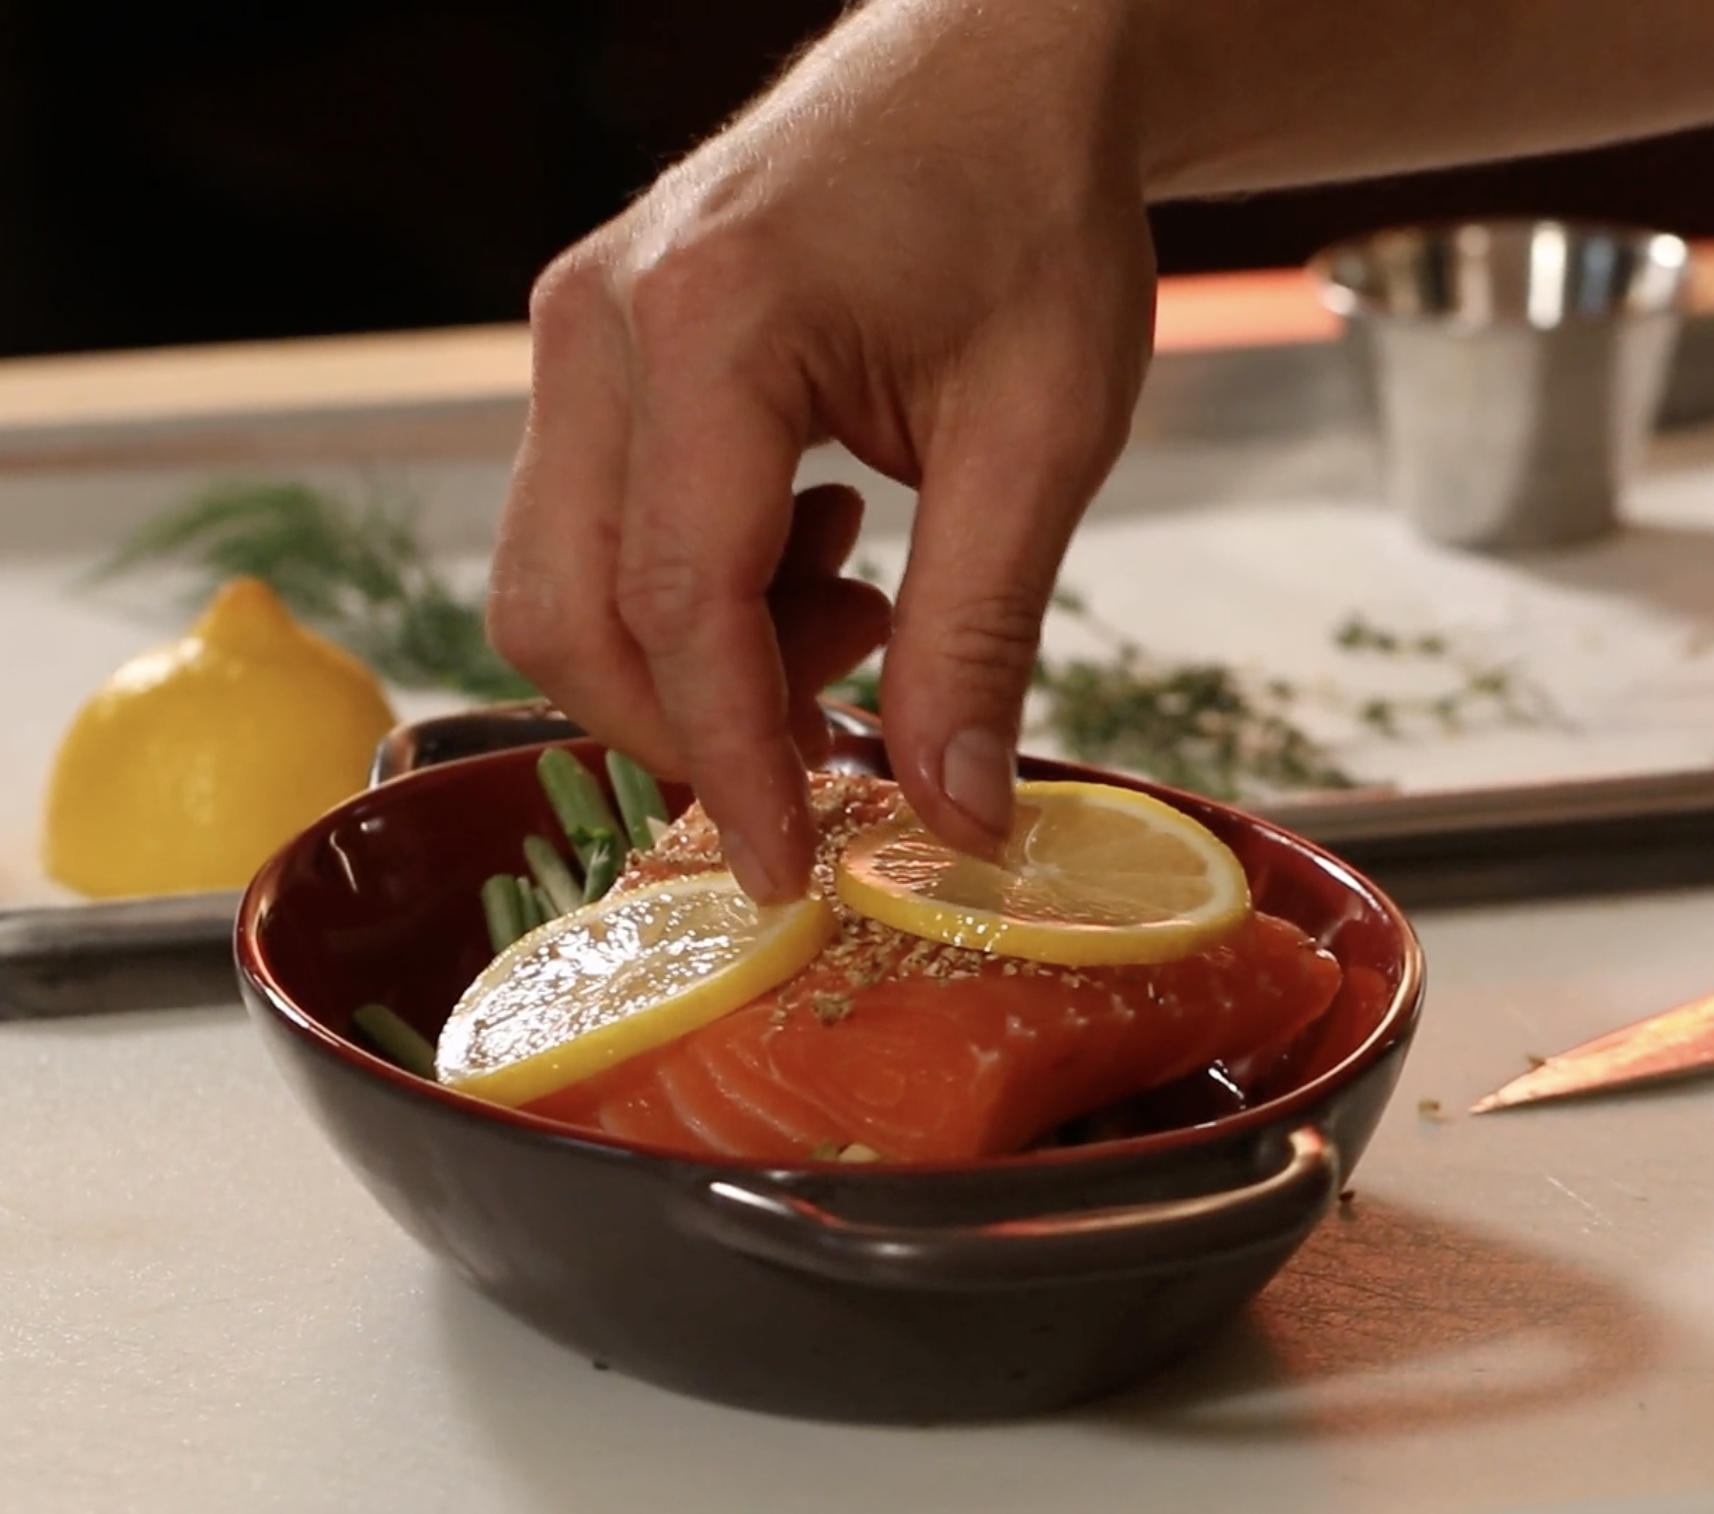 Cooking with Henny Penny Flex Combi: Salmon